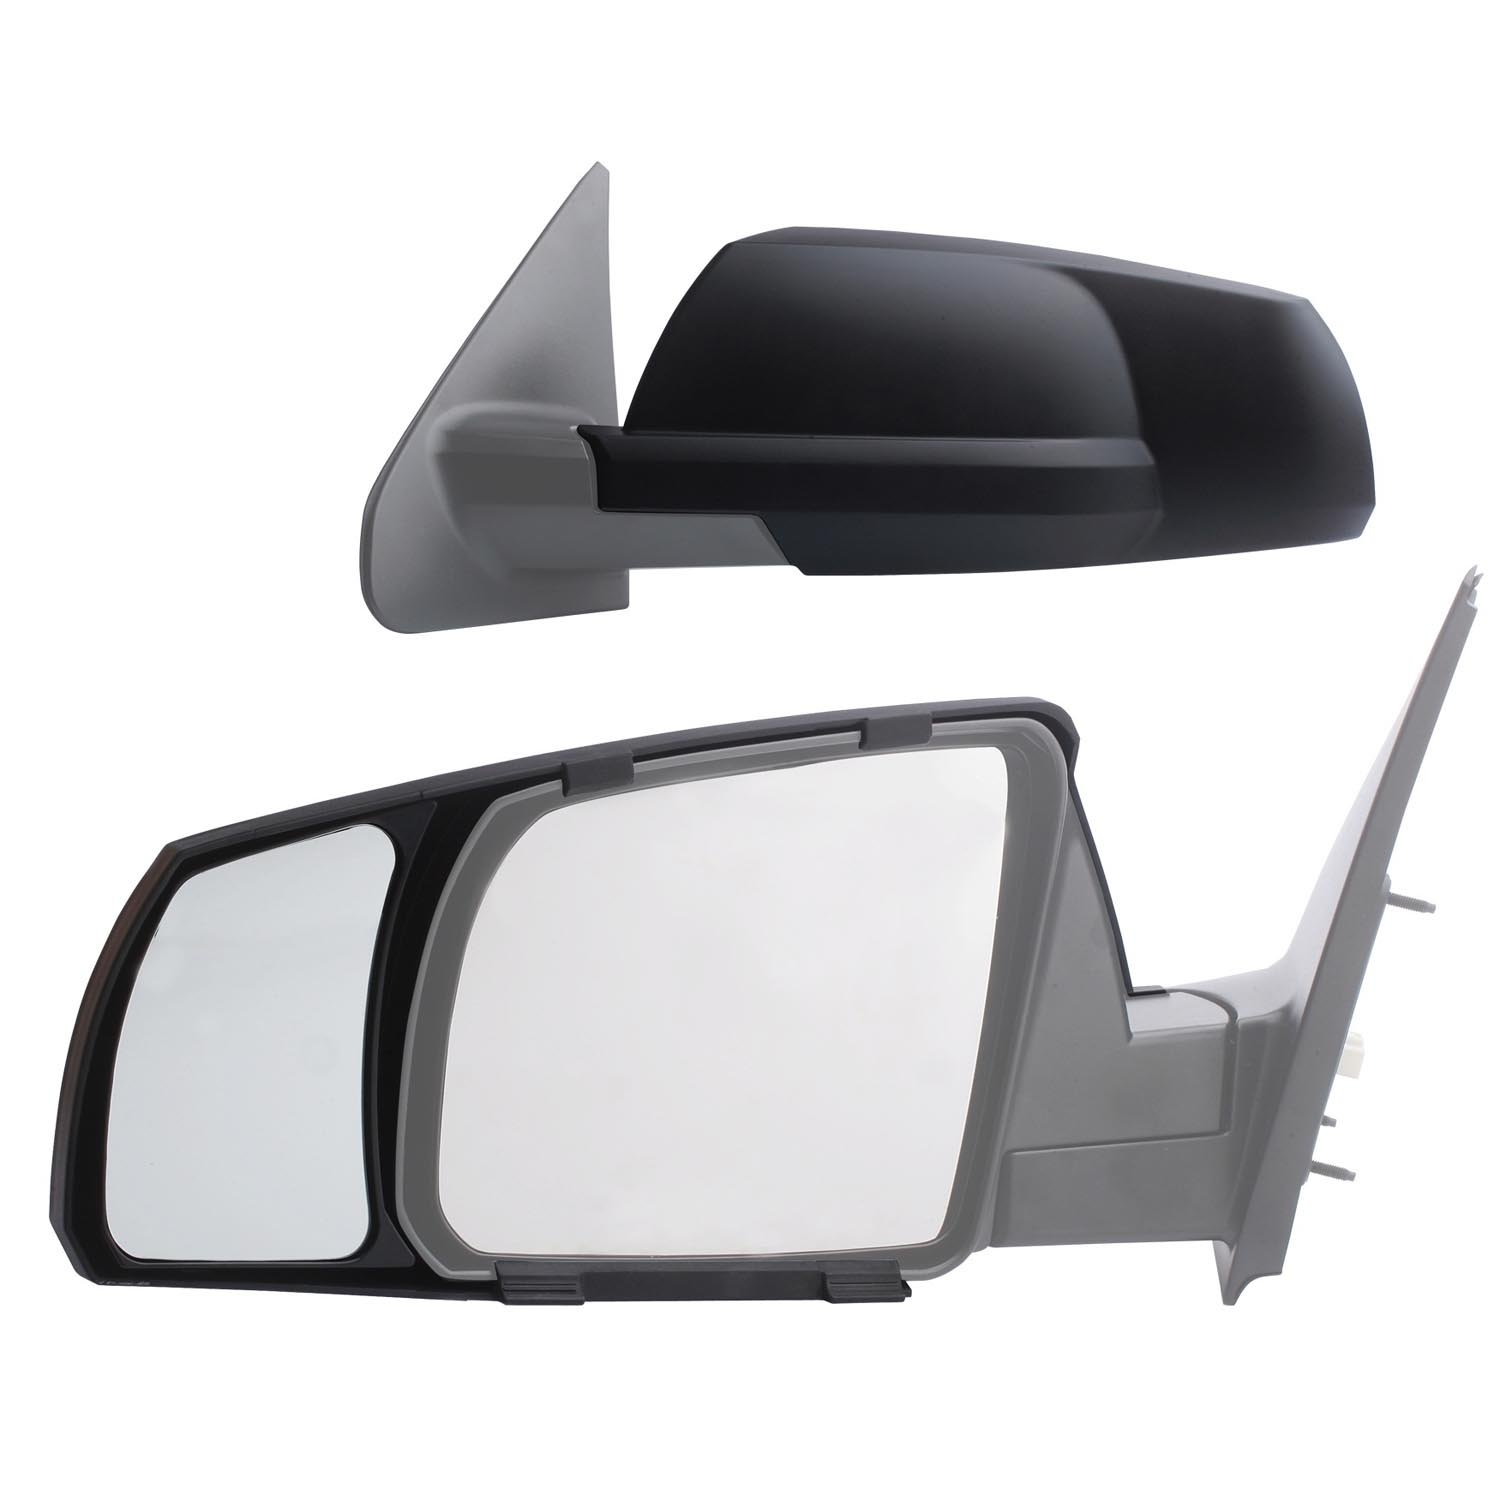 K Source Fit System 81300 Snap-on Black Towing Mirror for Toyota Tundra/Sequoia - Pair